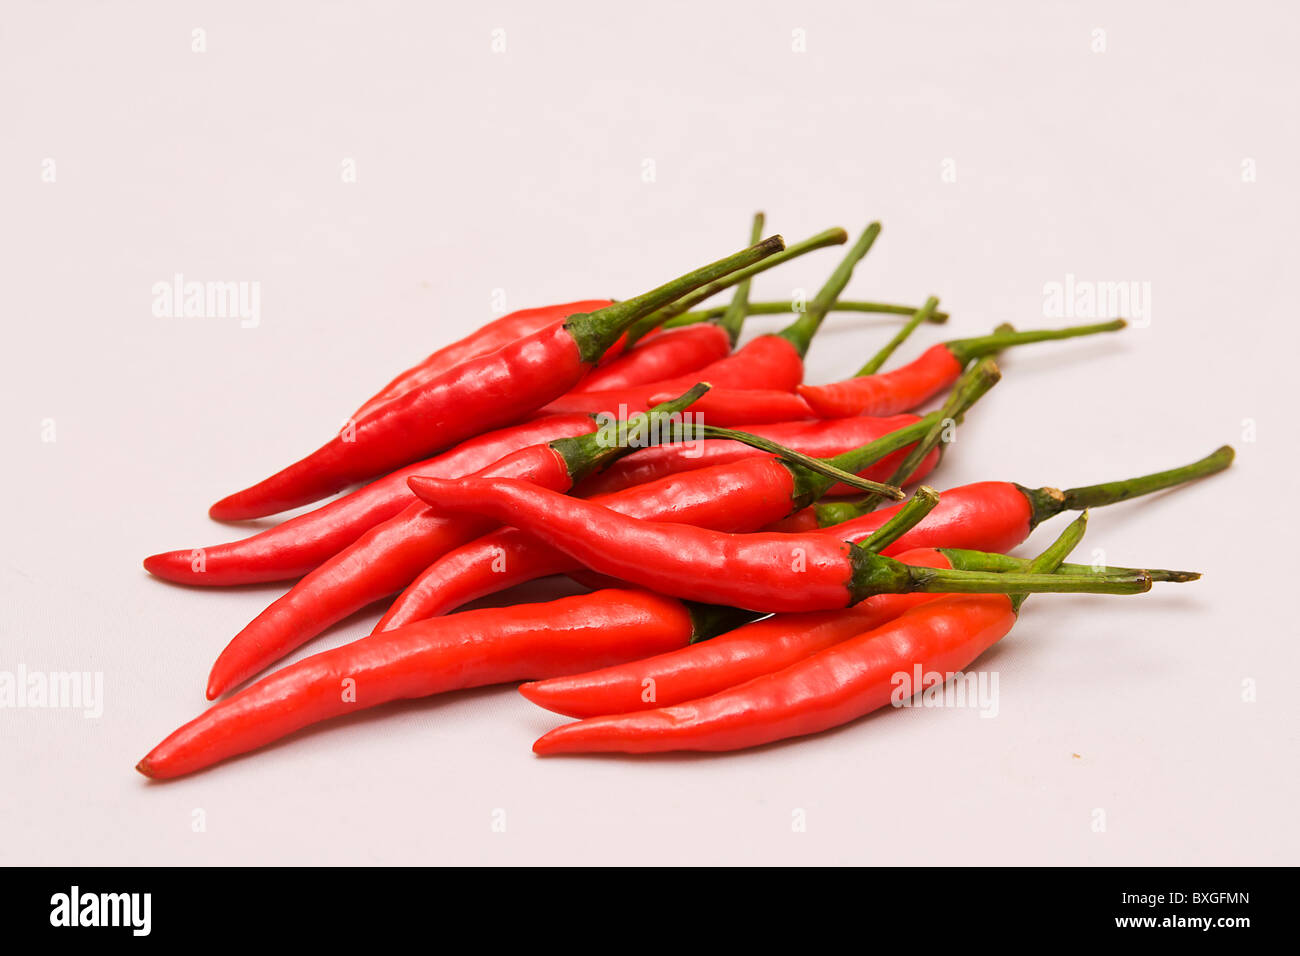 Bunch of Thai chili peppers - Stock Image